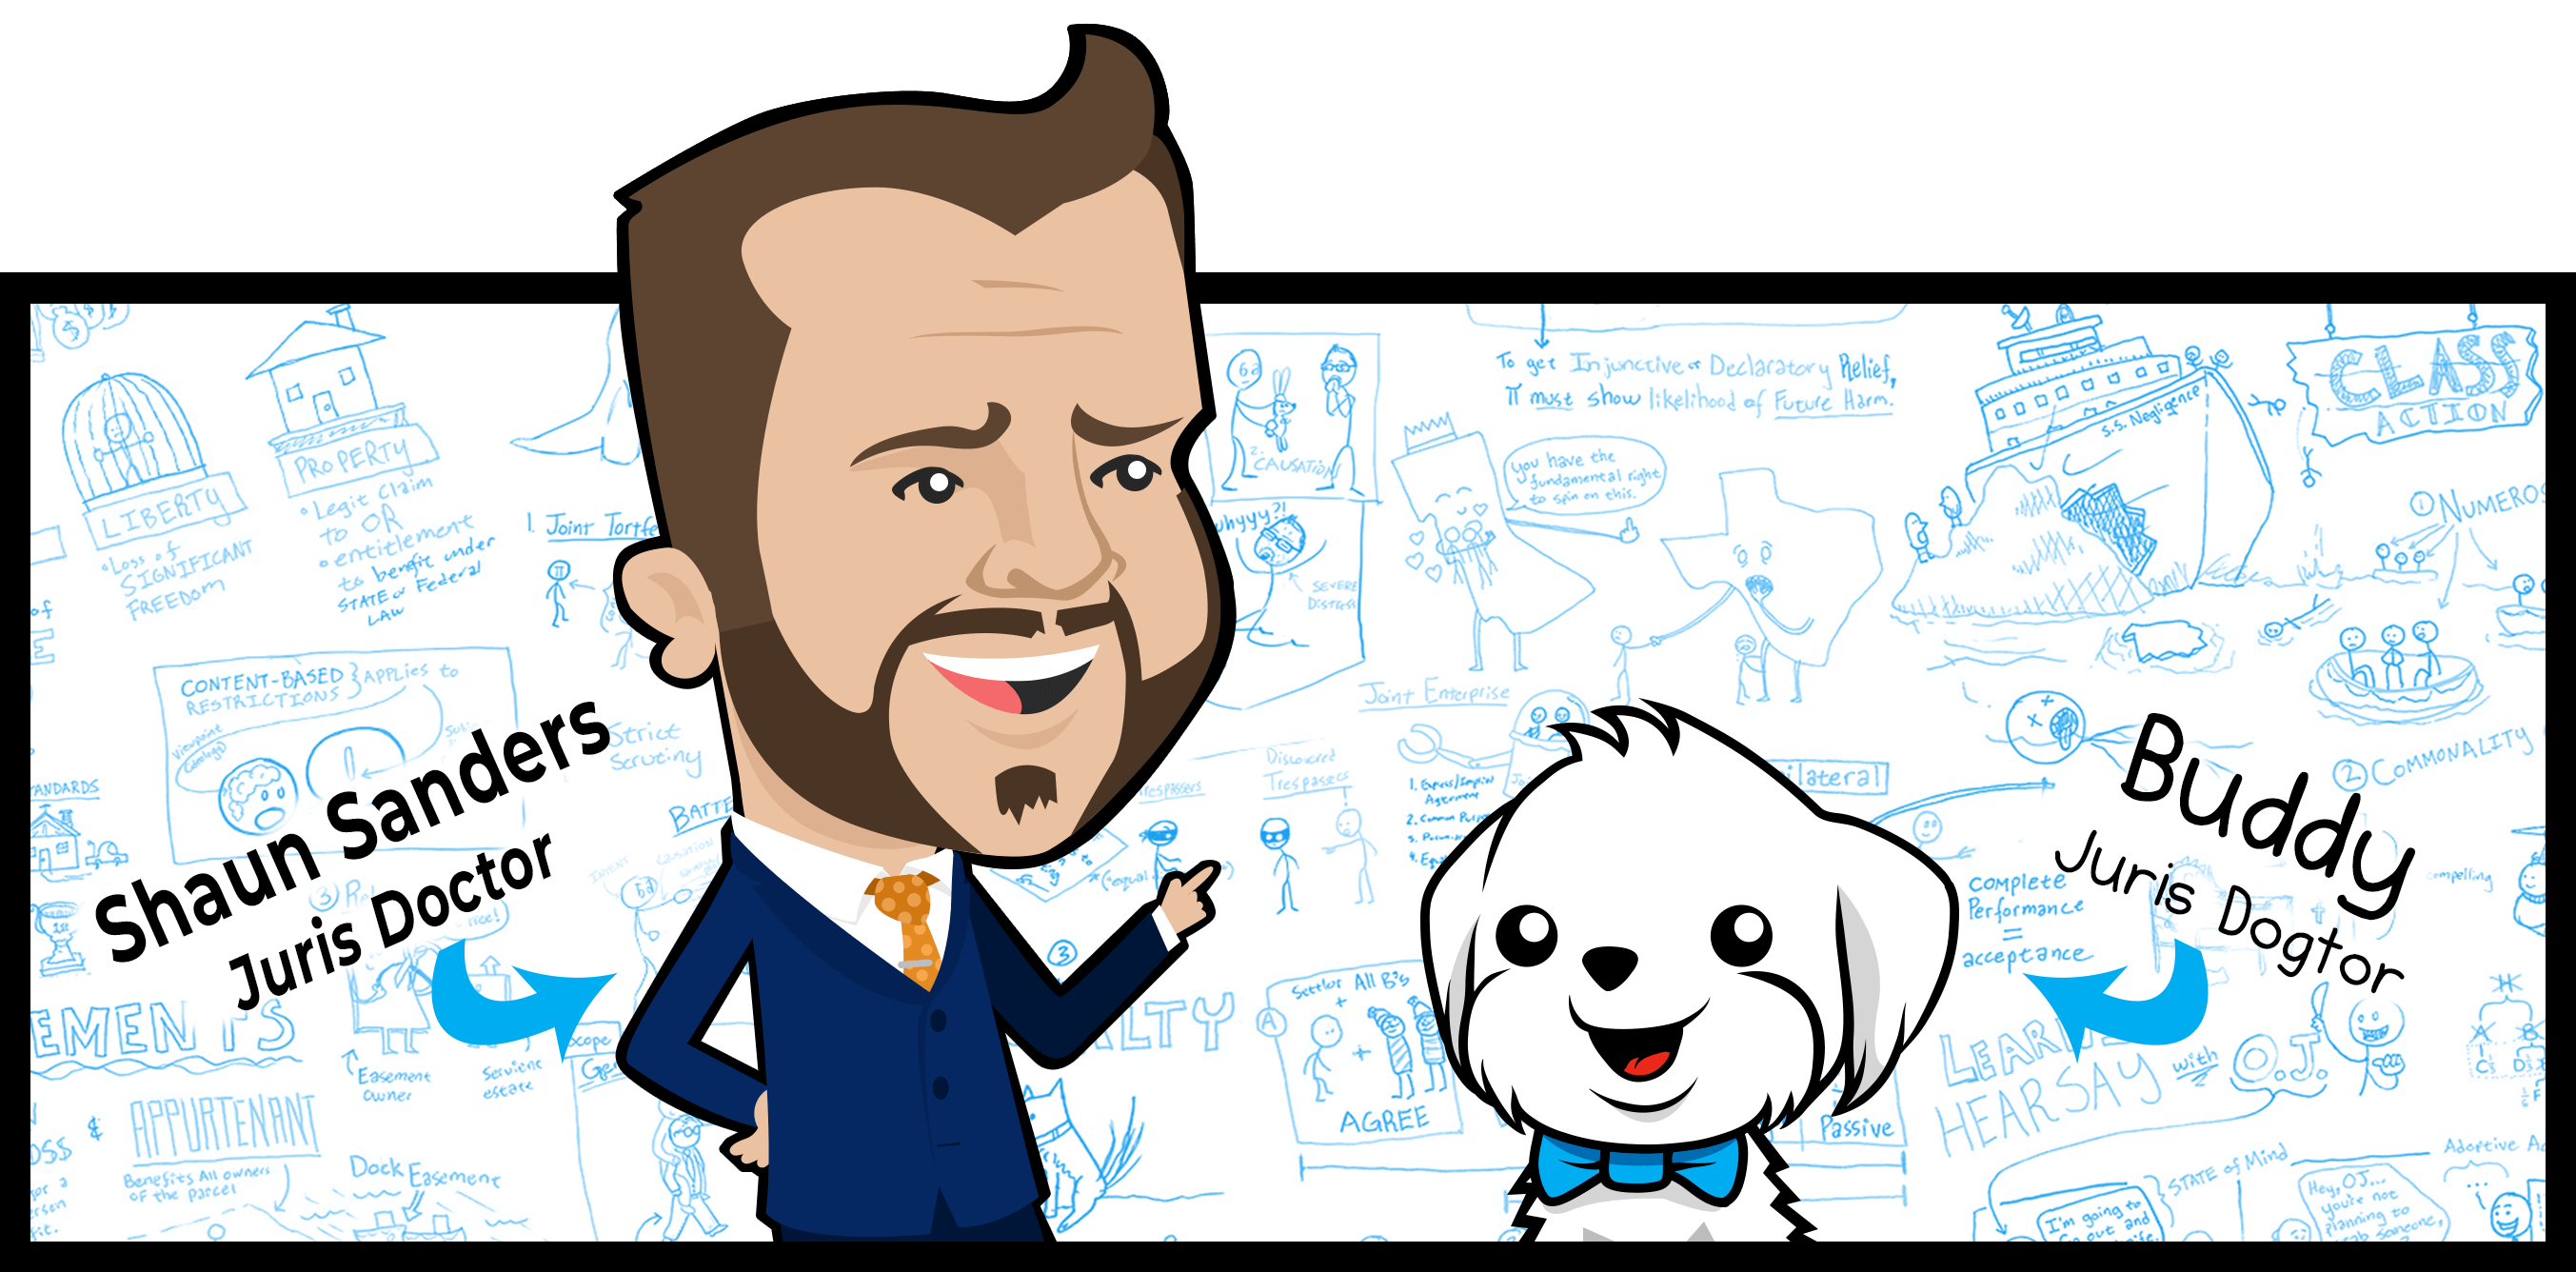 Illustration of Shaun Sanders, Juris Doctor, and Buddy, Juris Dogtor, in front of visualizations used in the app.